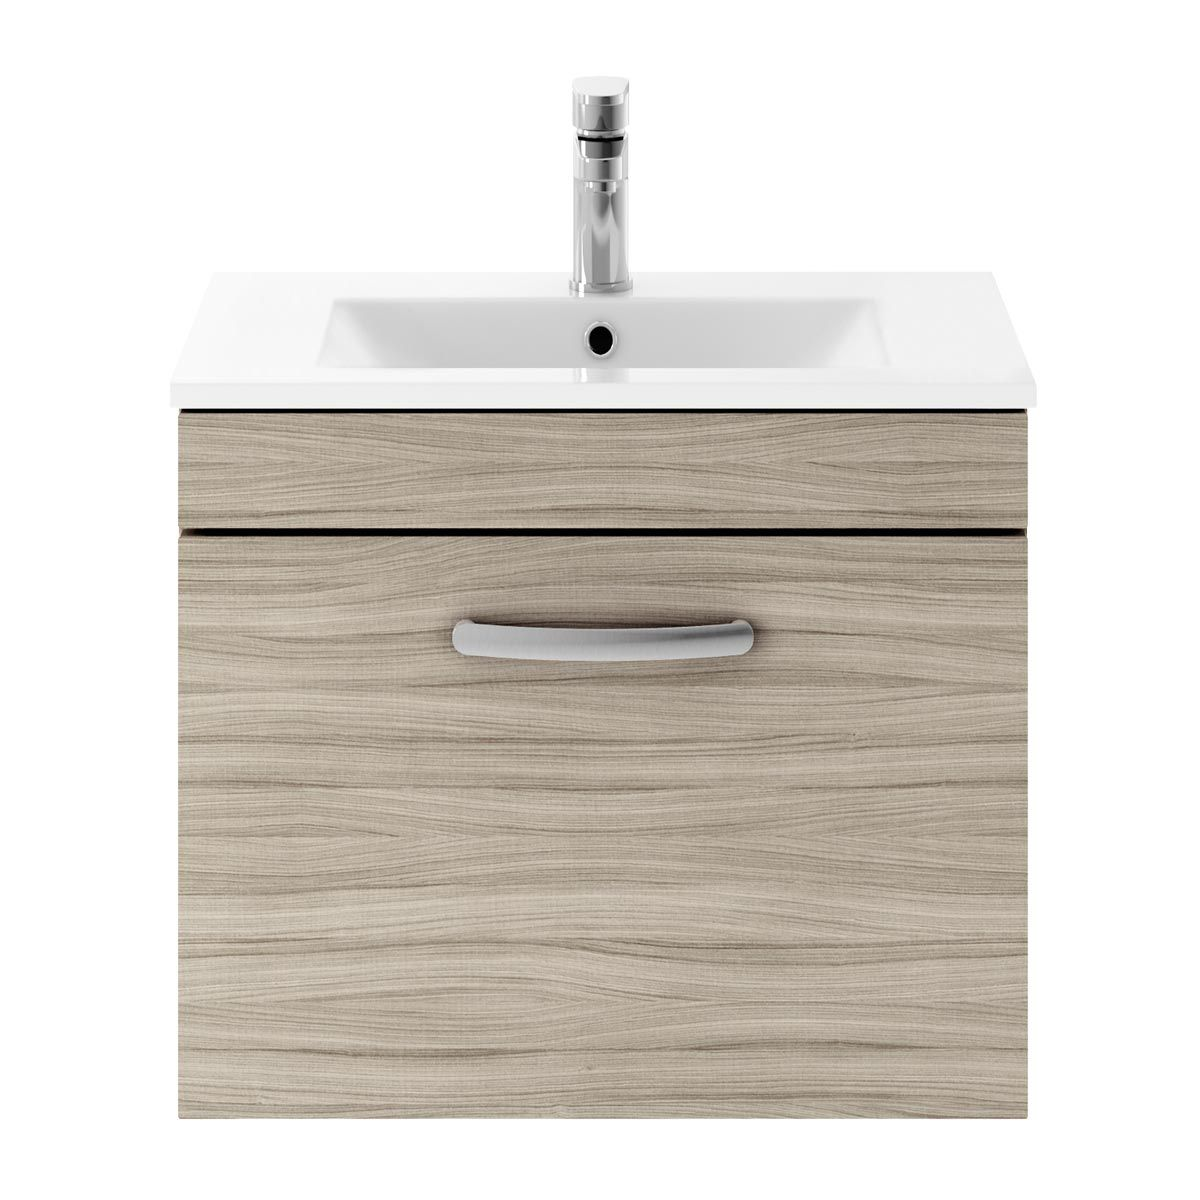 Nuie Athena Driftwood 1 Drawer Wall Hung Vanity Unit with 18mm Profile Basin 600mm